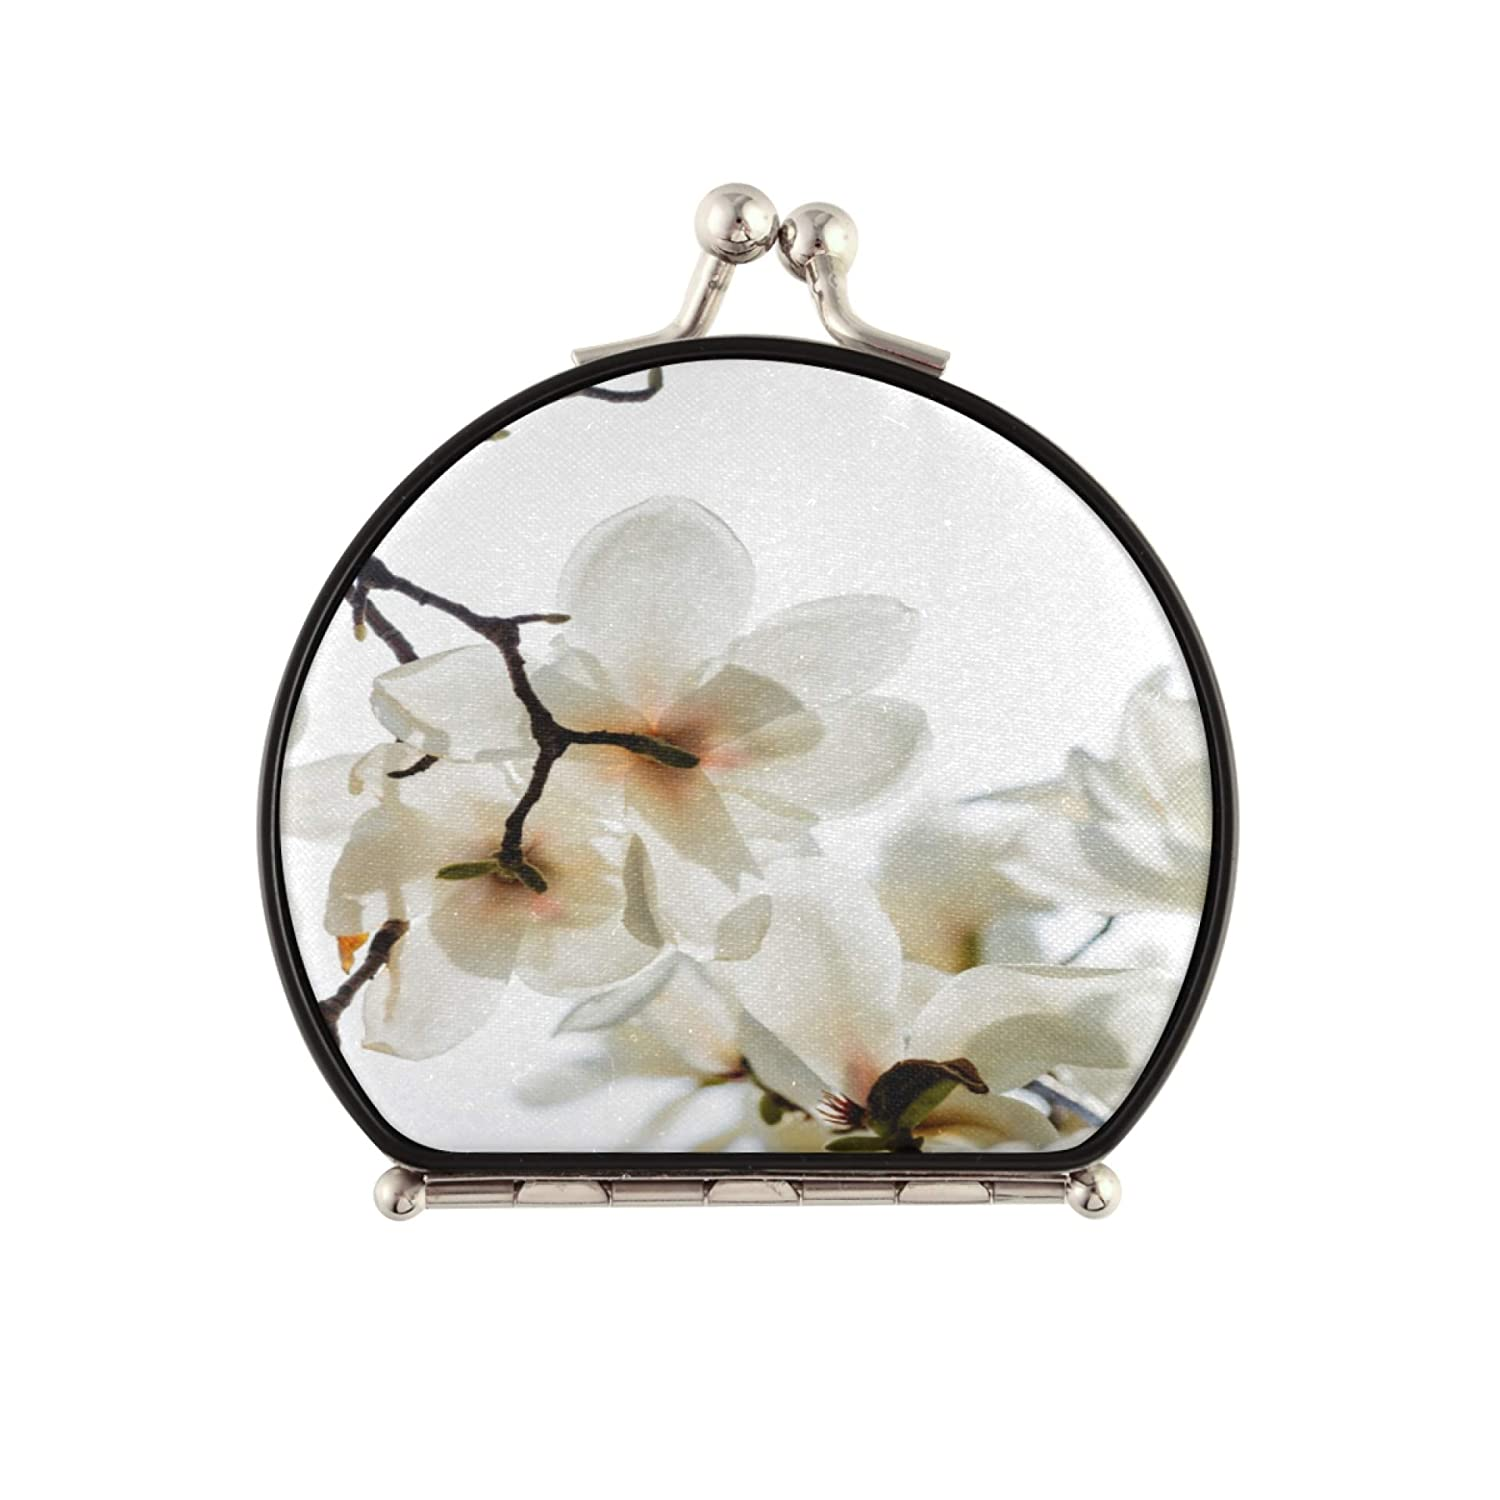 New sales MensTravelMirror Charming Blooming New product! New type SmallCompactMirro Orchids